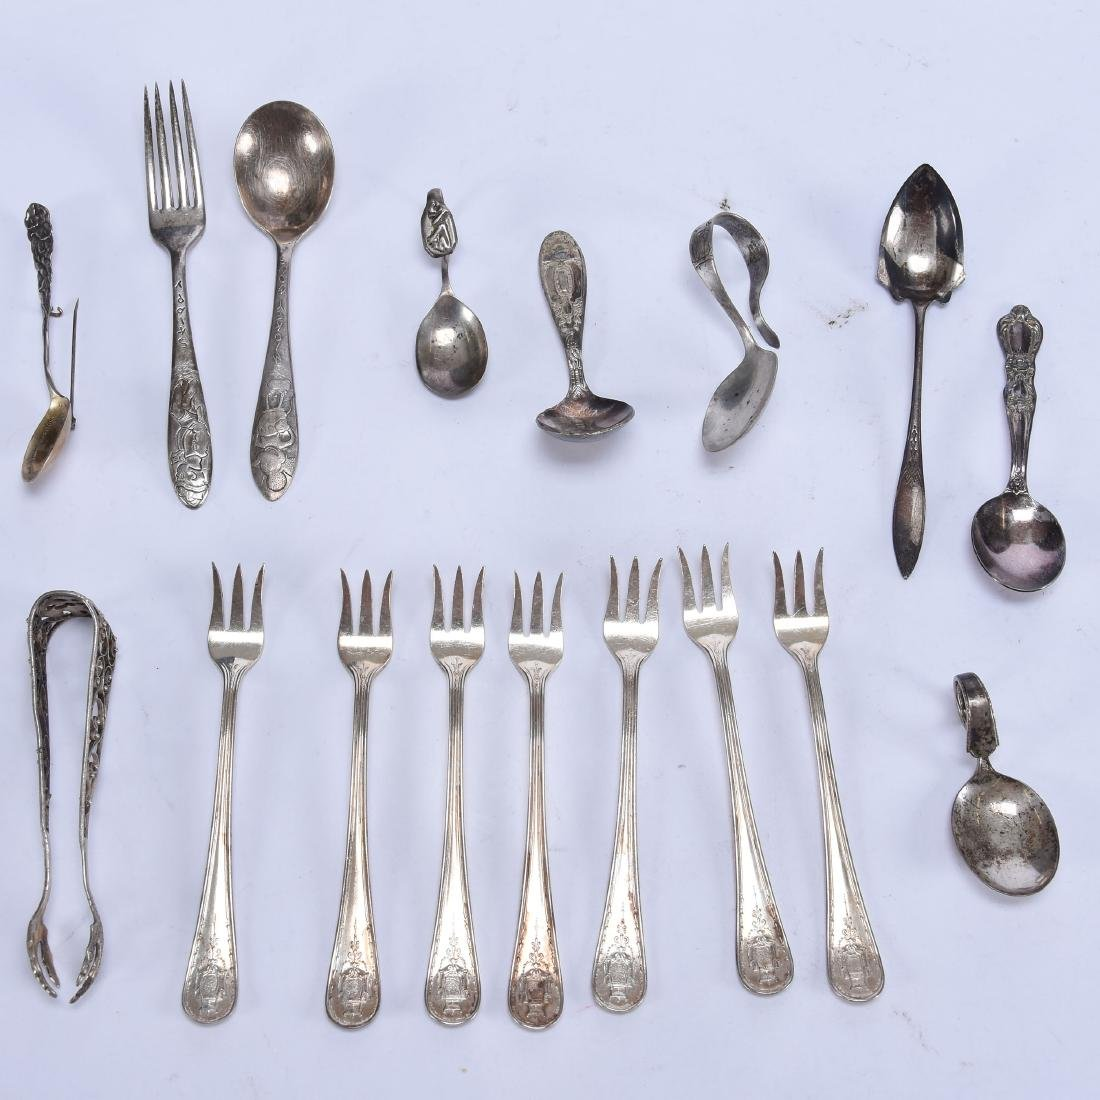 Large Grouping of Sterling and Silverplate Flatware - 10